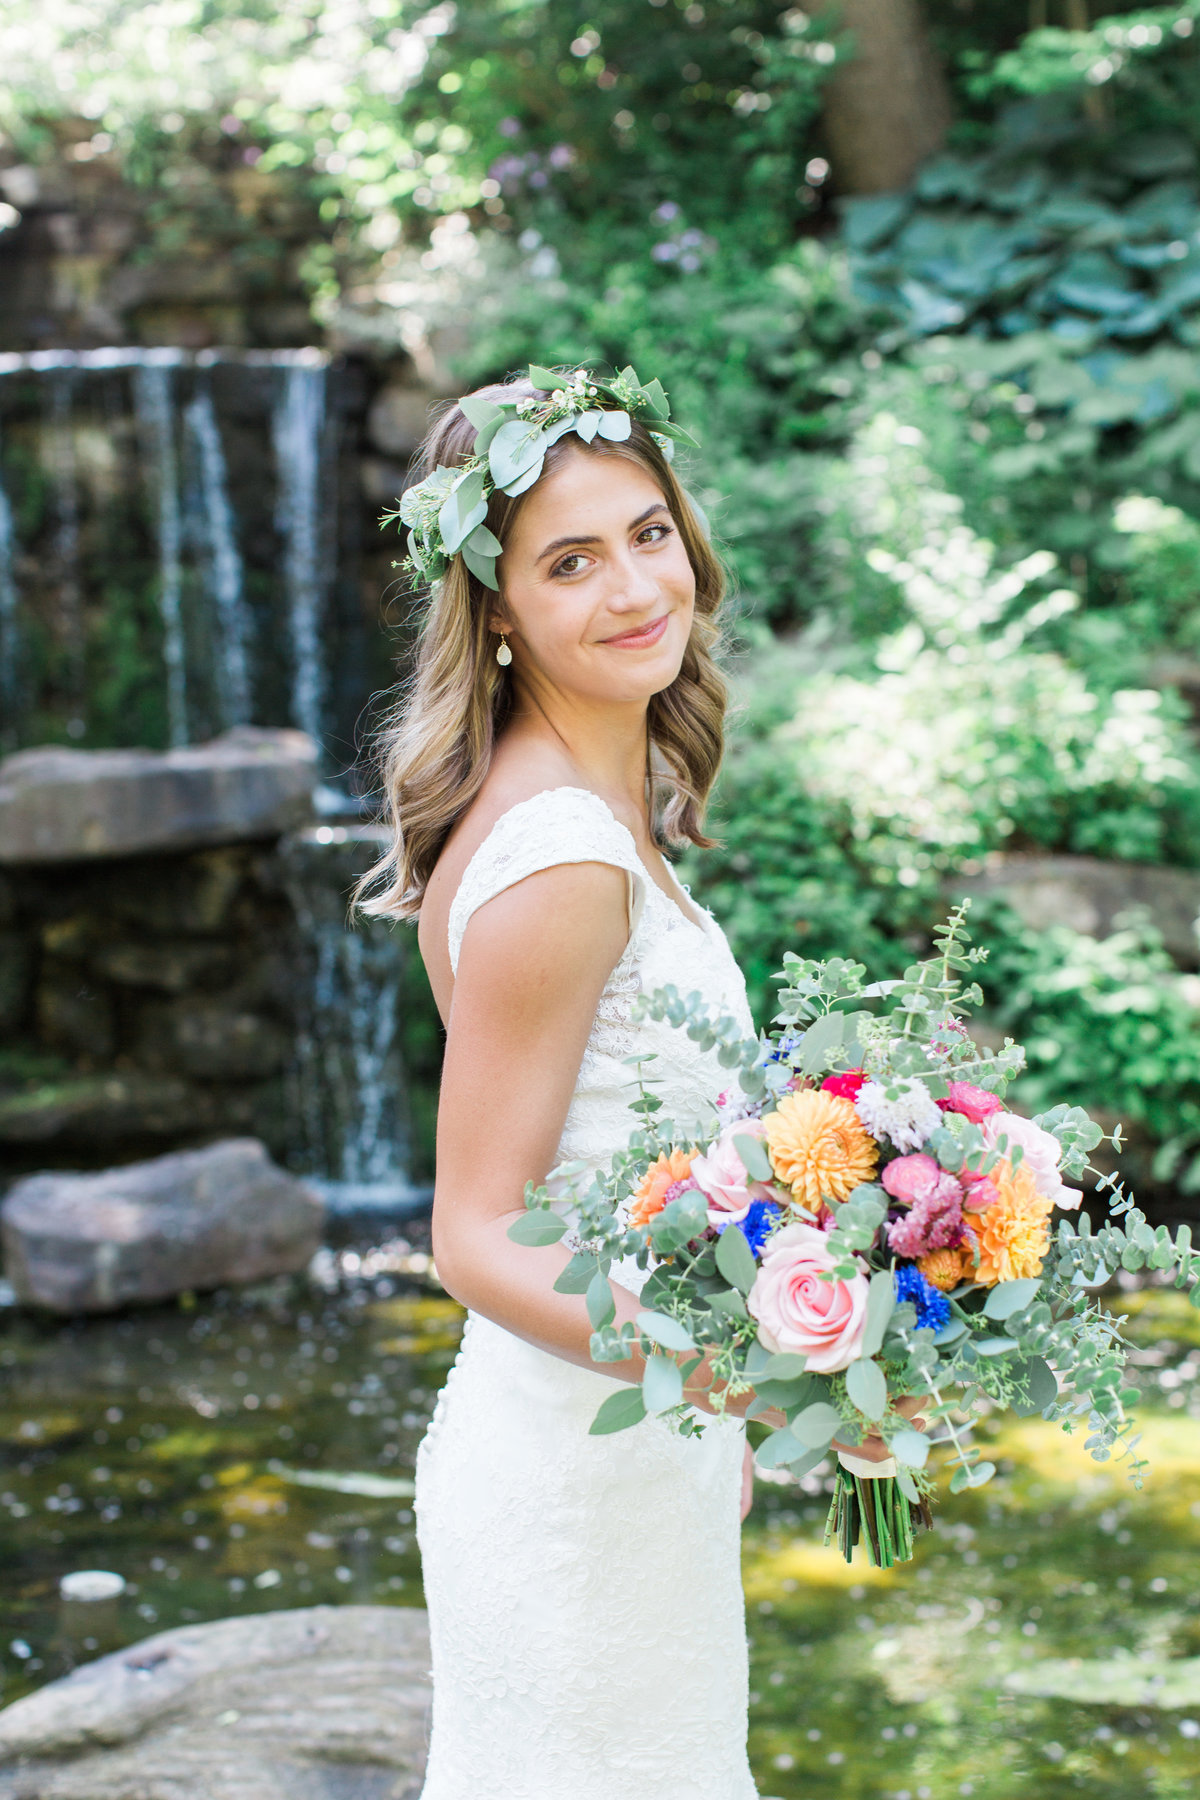 Charley Creek Gardens Wedding Bride with Flower Crown  Photo